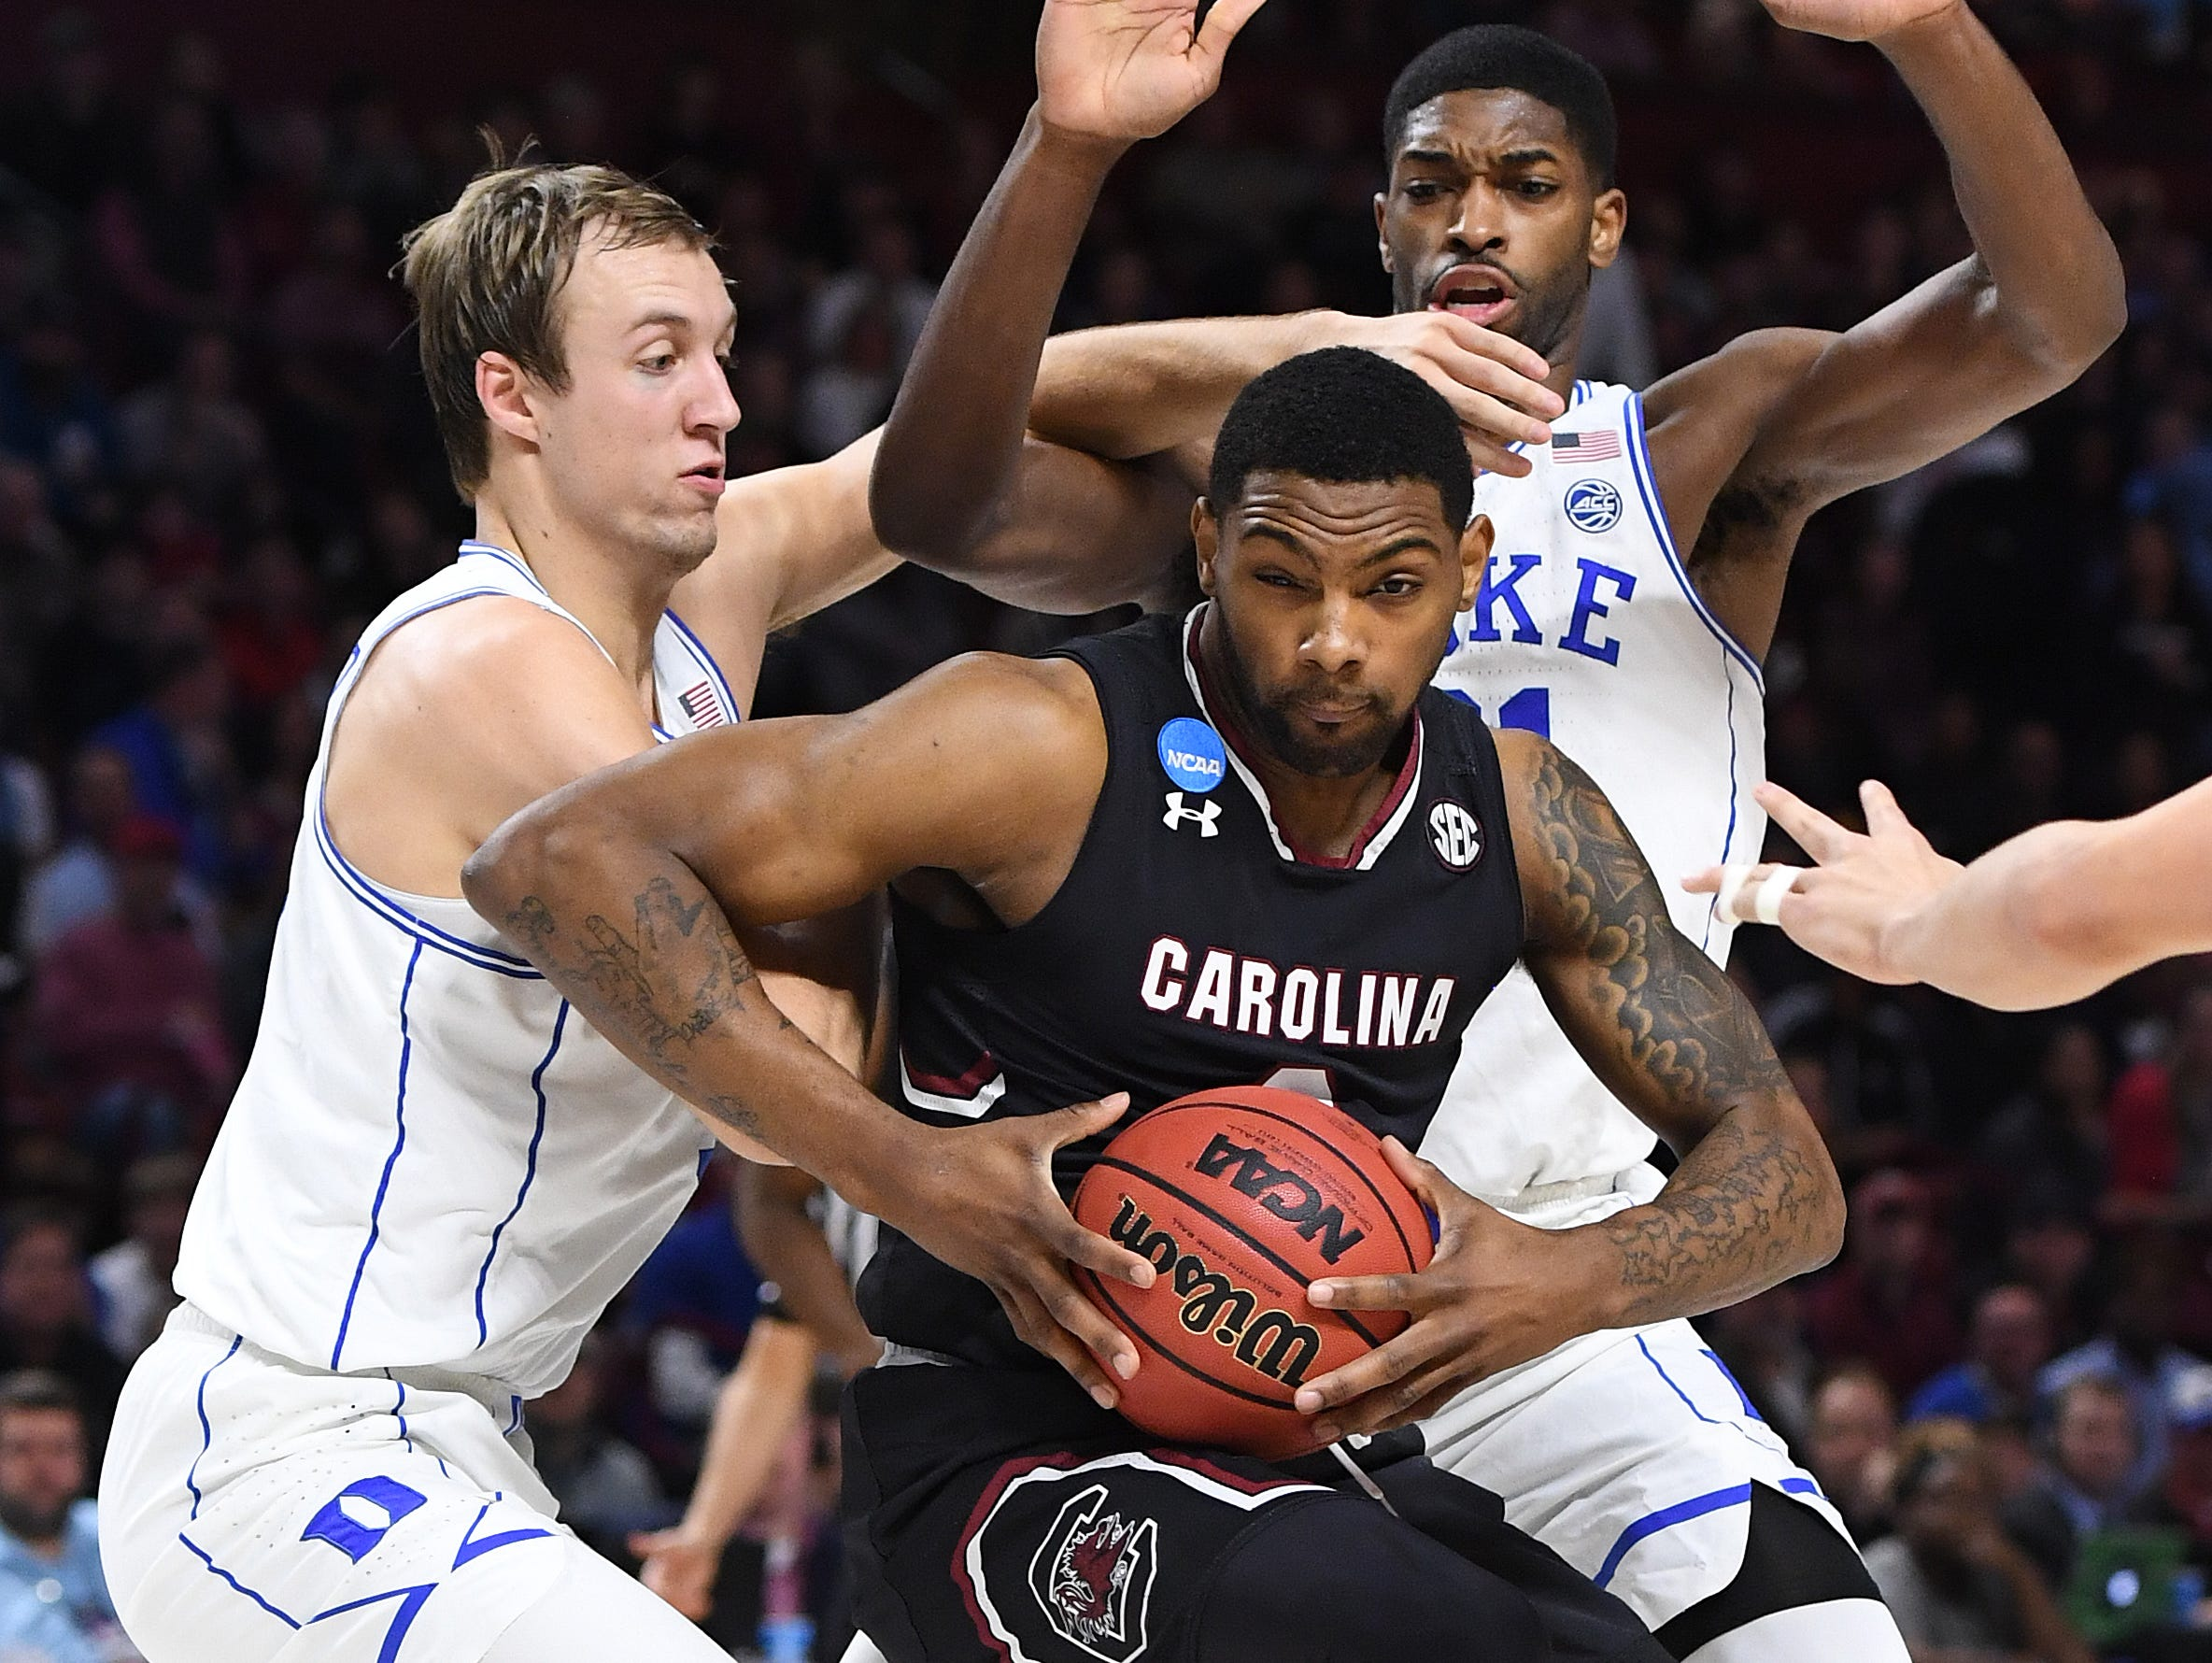 Duke guard Luke Kennard (5), left, and forward Amile Jefferson (21) guard South Carolina guard Sindarius Thornwell (0) during the 2nd round of the NCAA Tournament at Bon Secours Wellness Arena in downtown Greenville on Sunday, March 19, 2017.